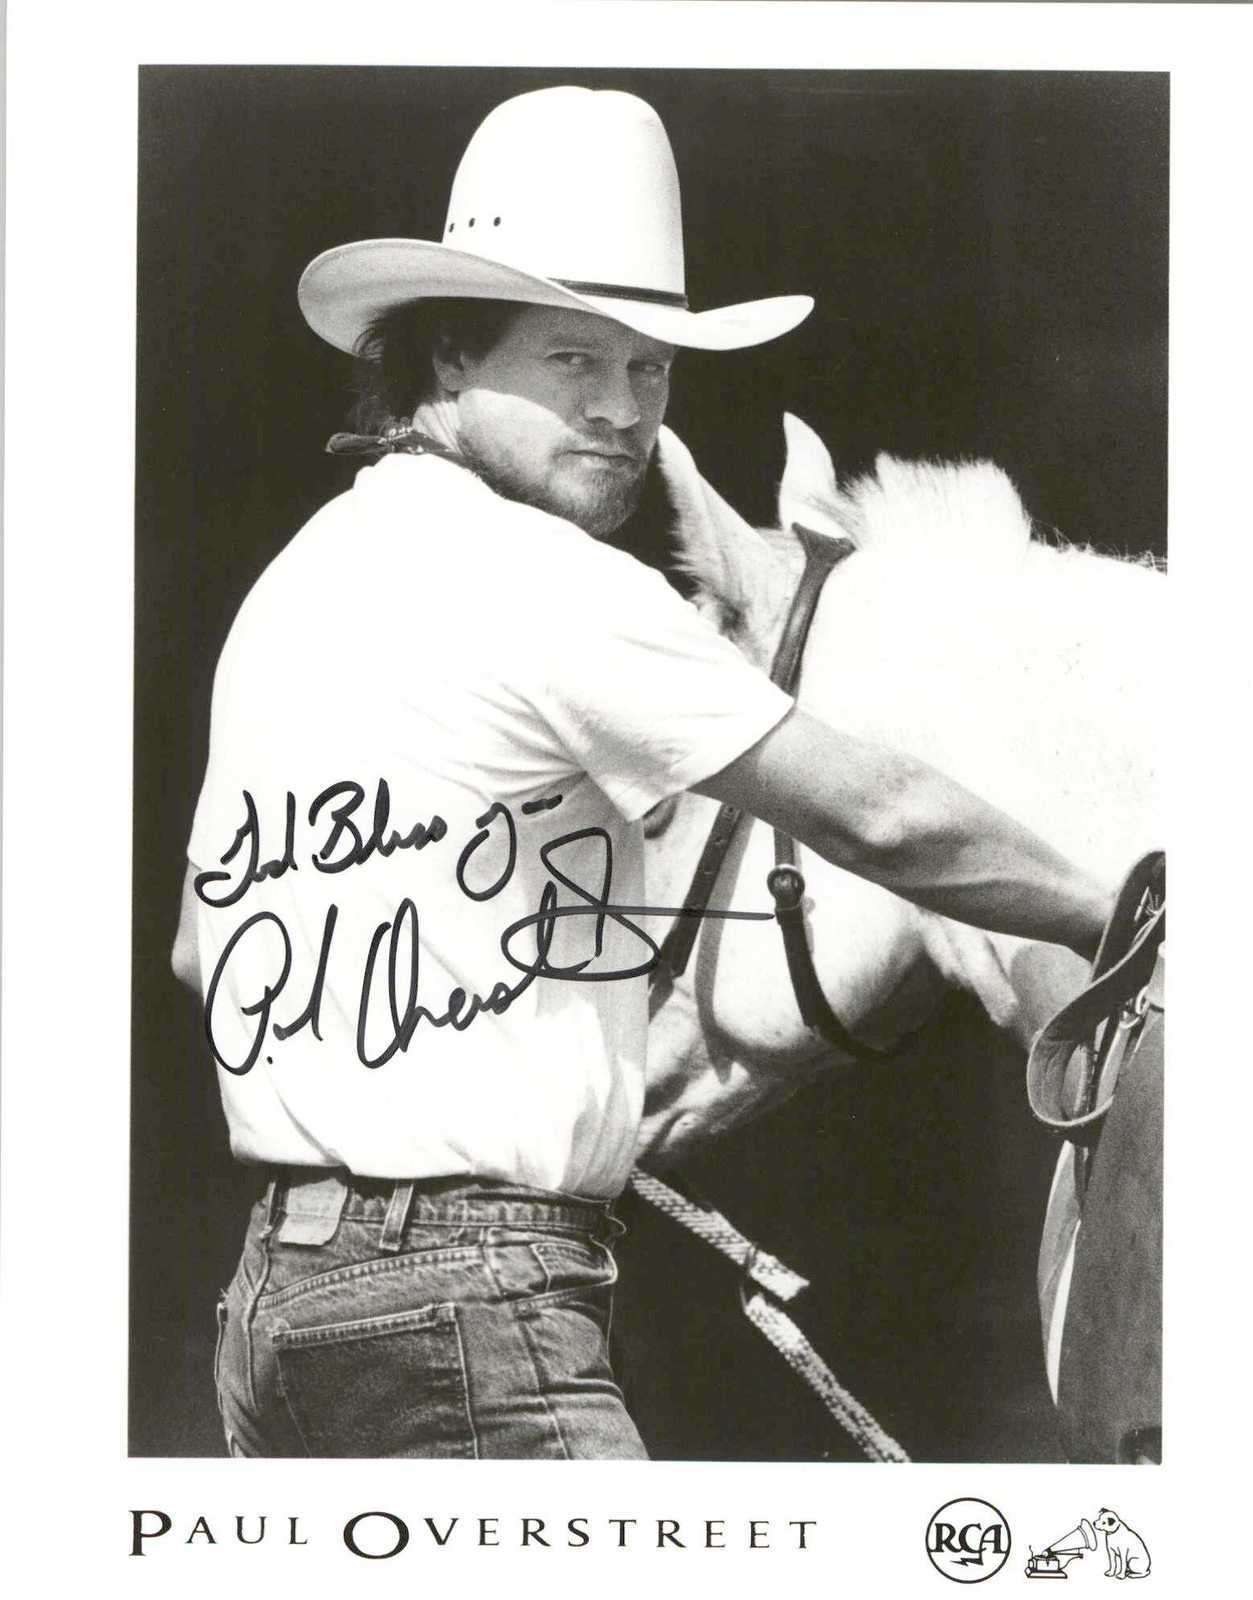 Primary image for Paul Overstreet Signed Autographed Glossy 8x10 Photo